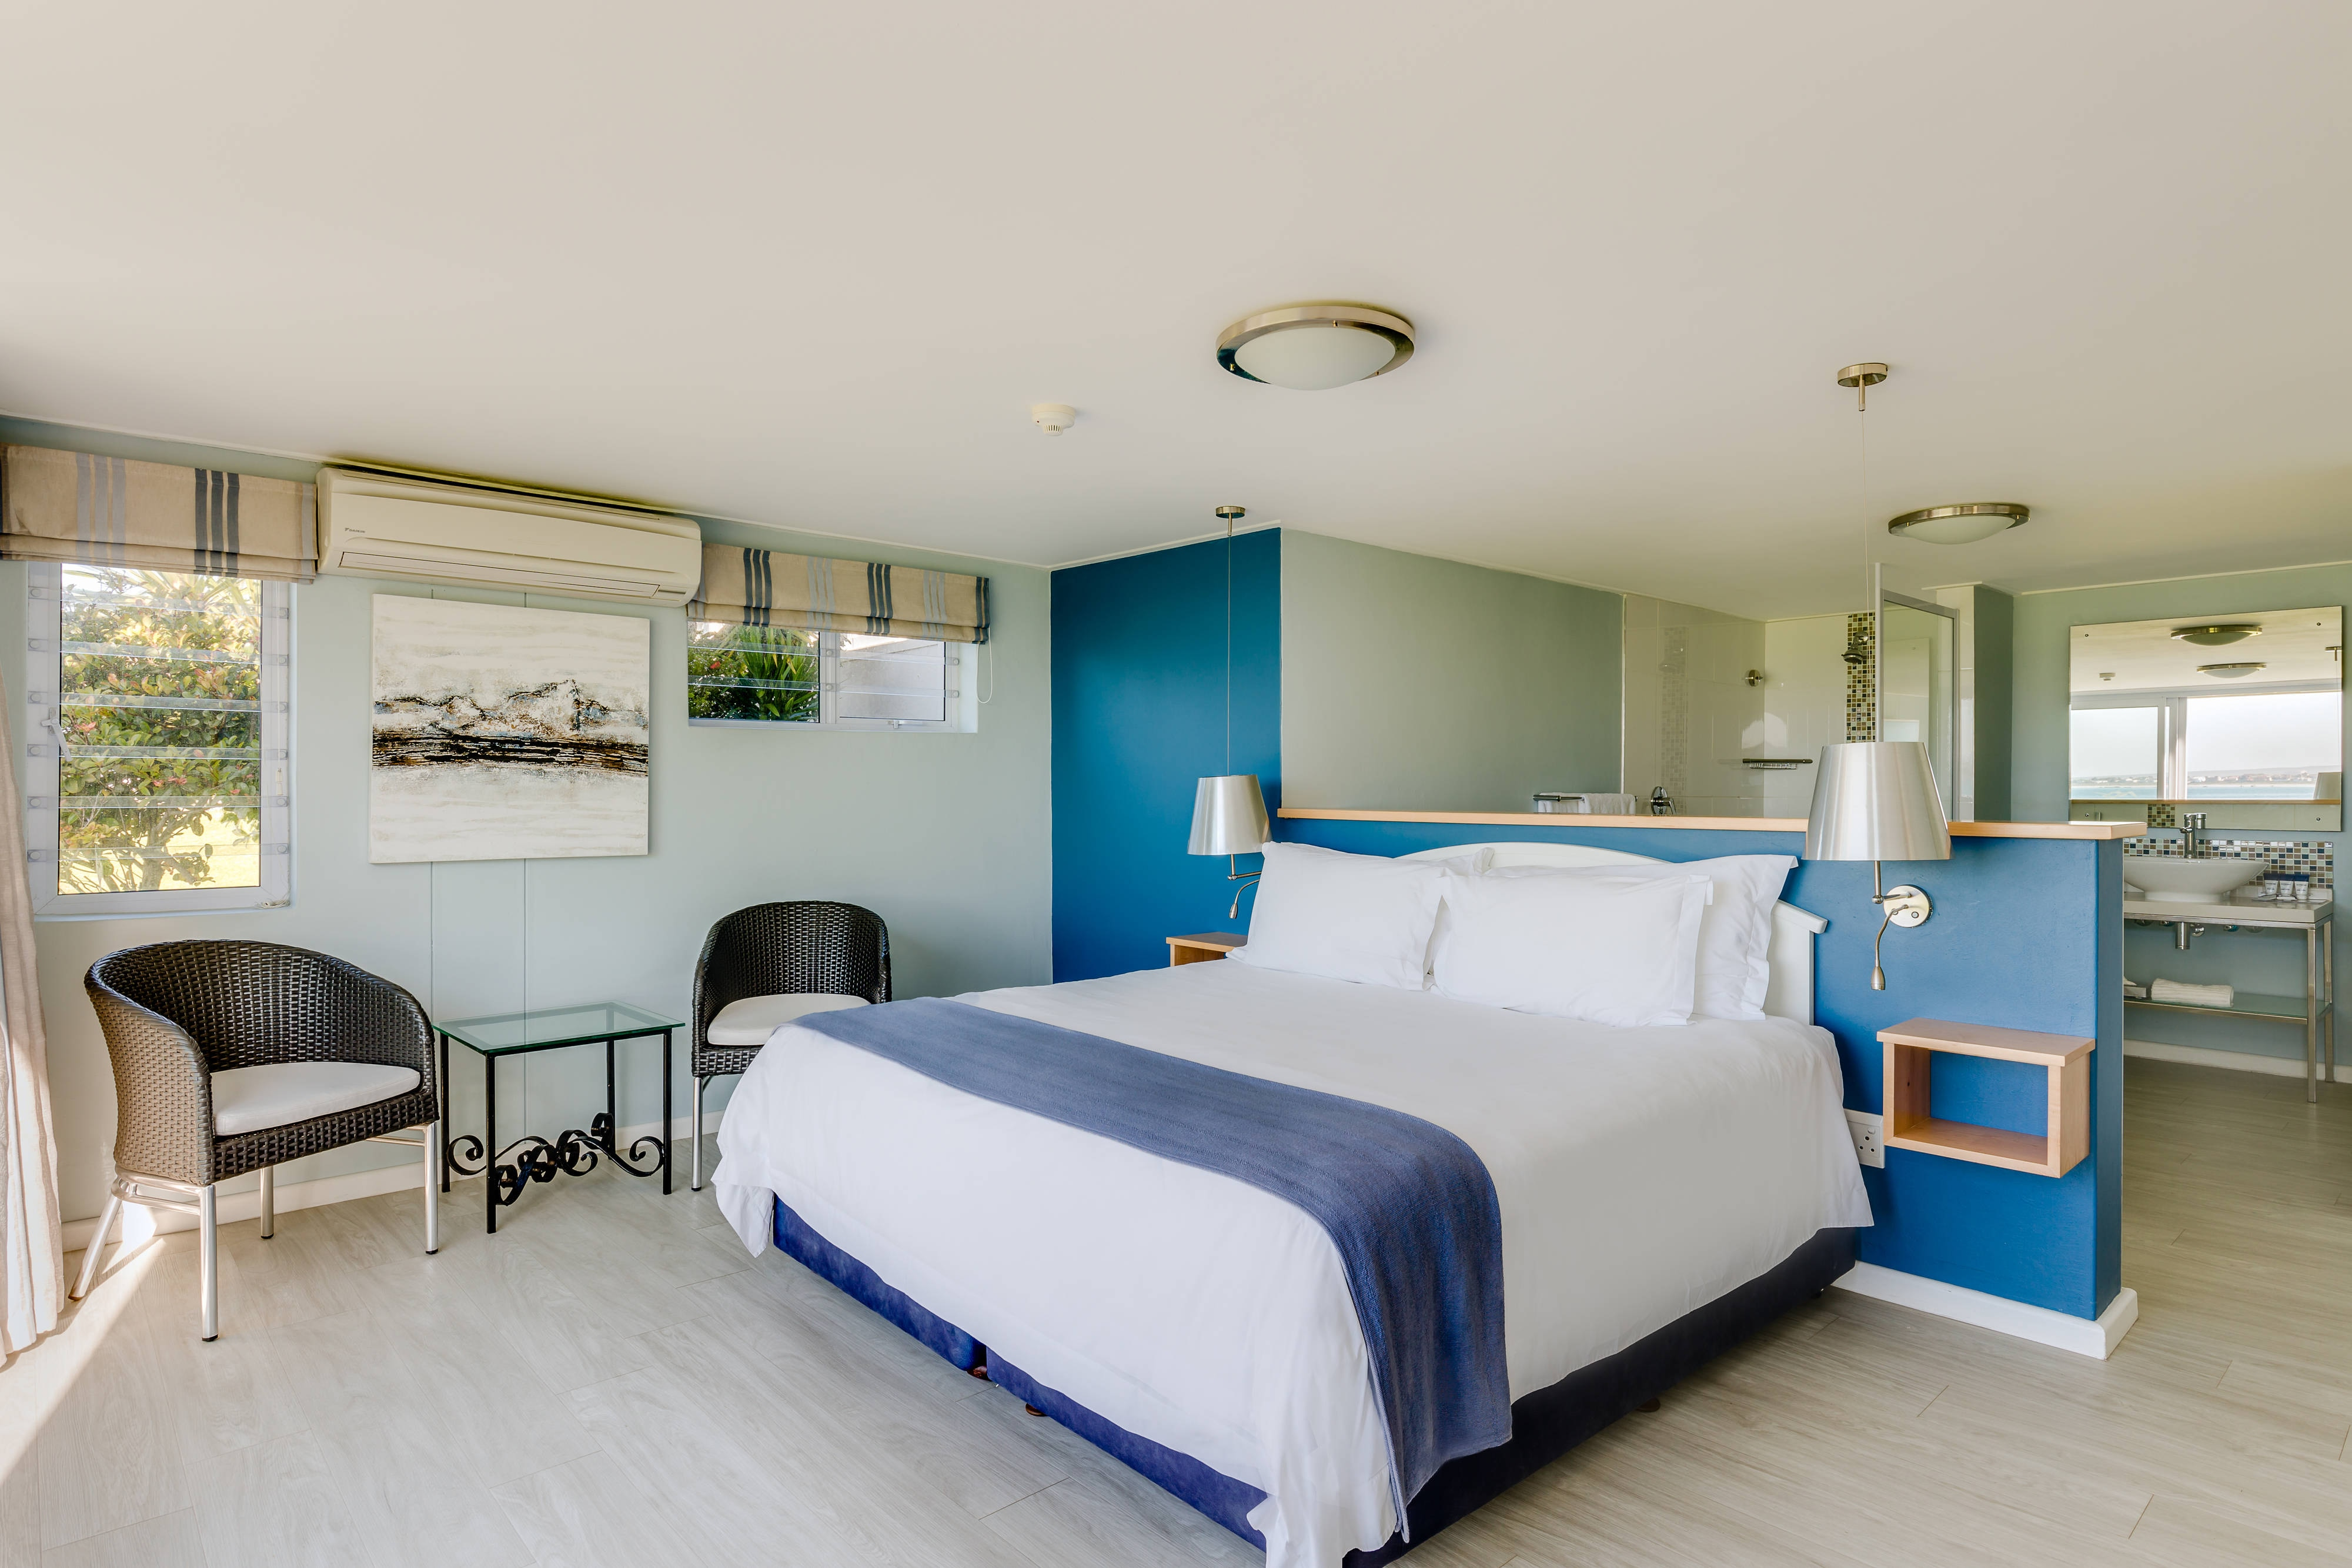 Suite Accommodation in Saldanha Bay